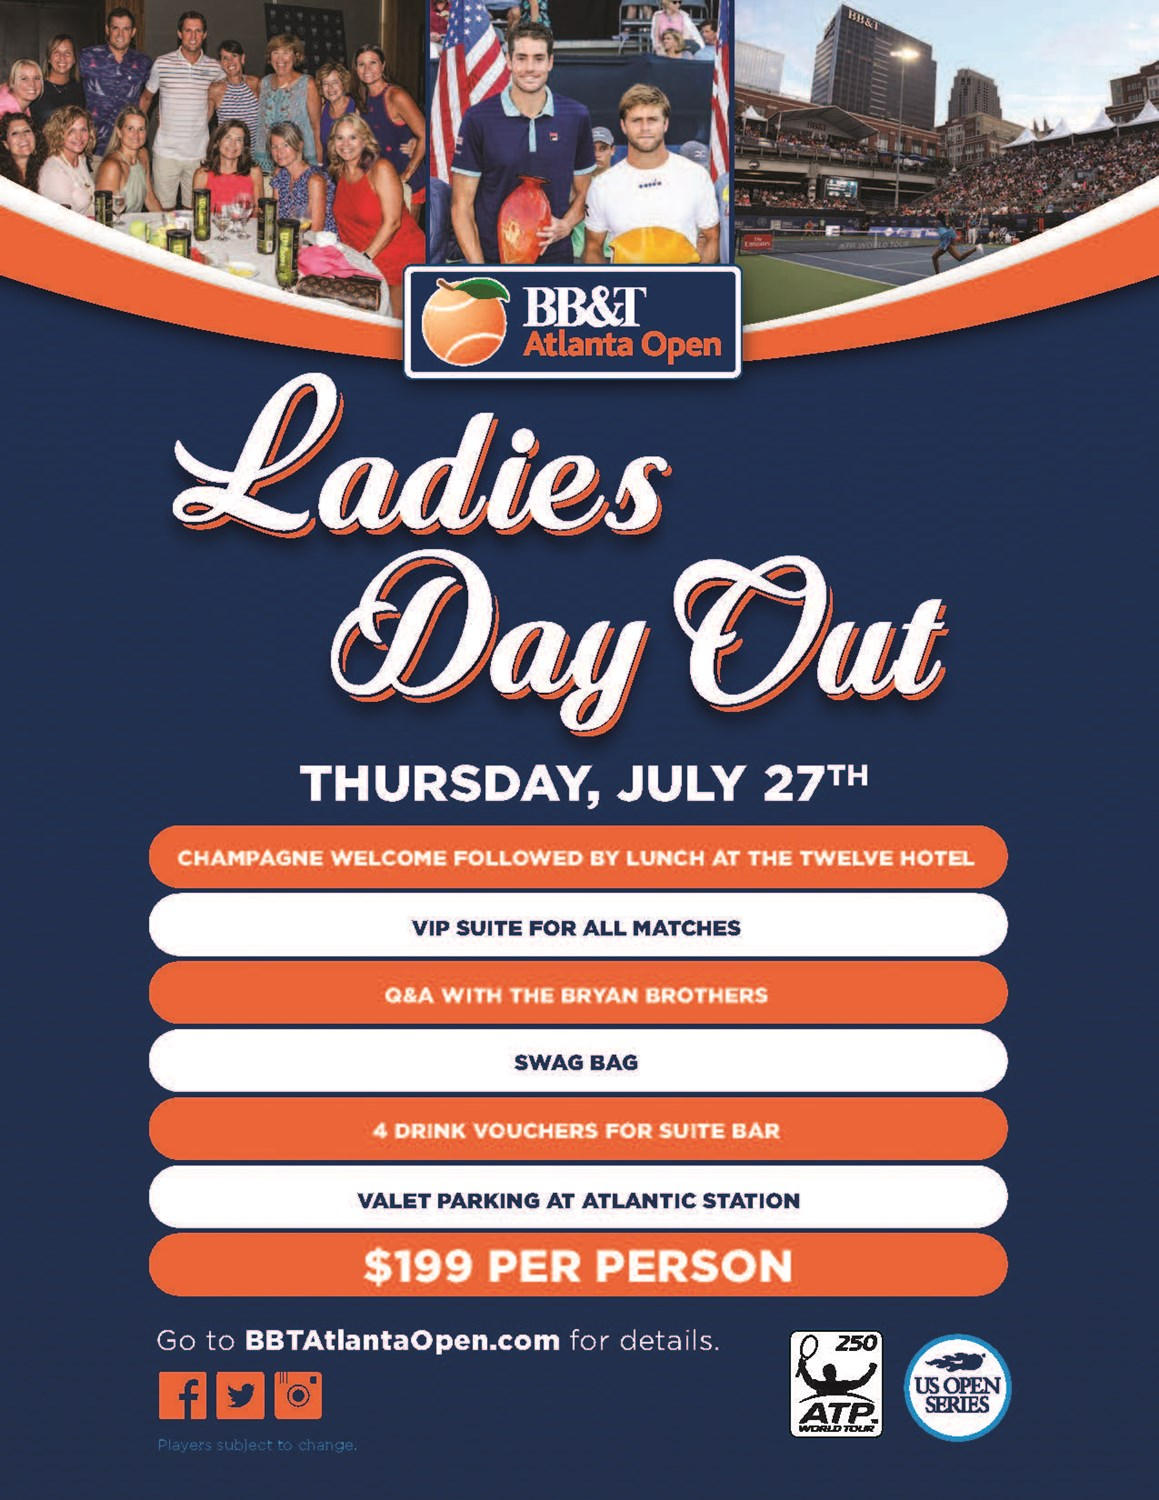 LadiesDay2018_Flyer_2